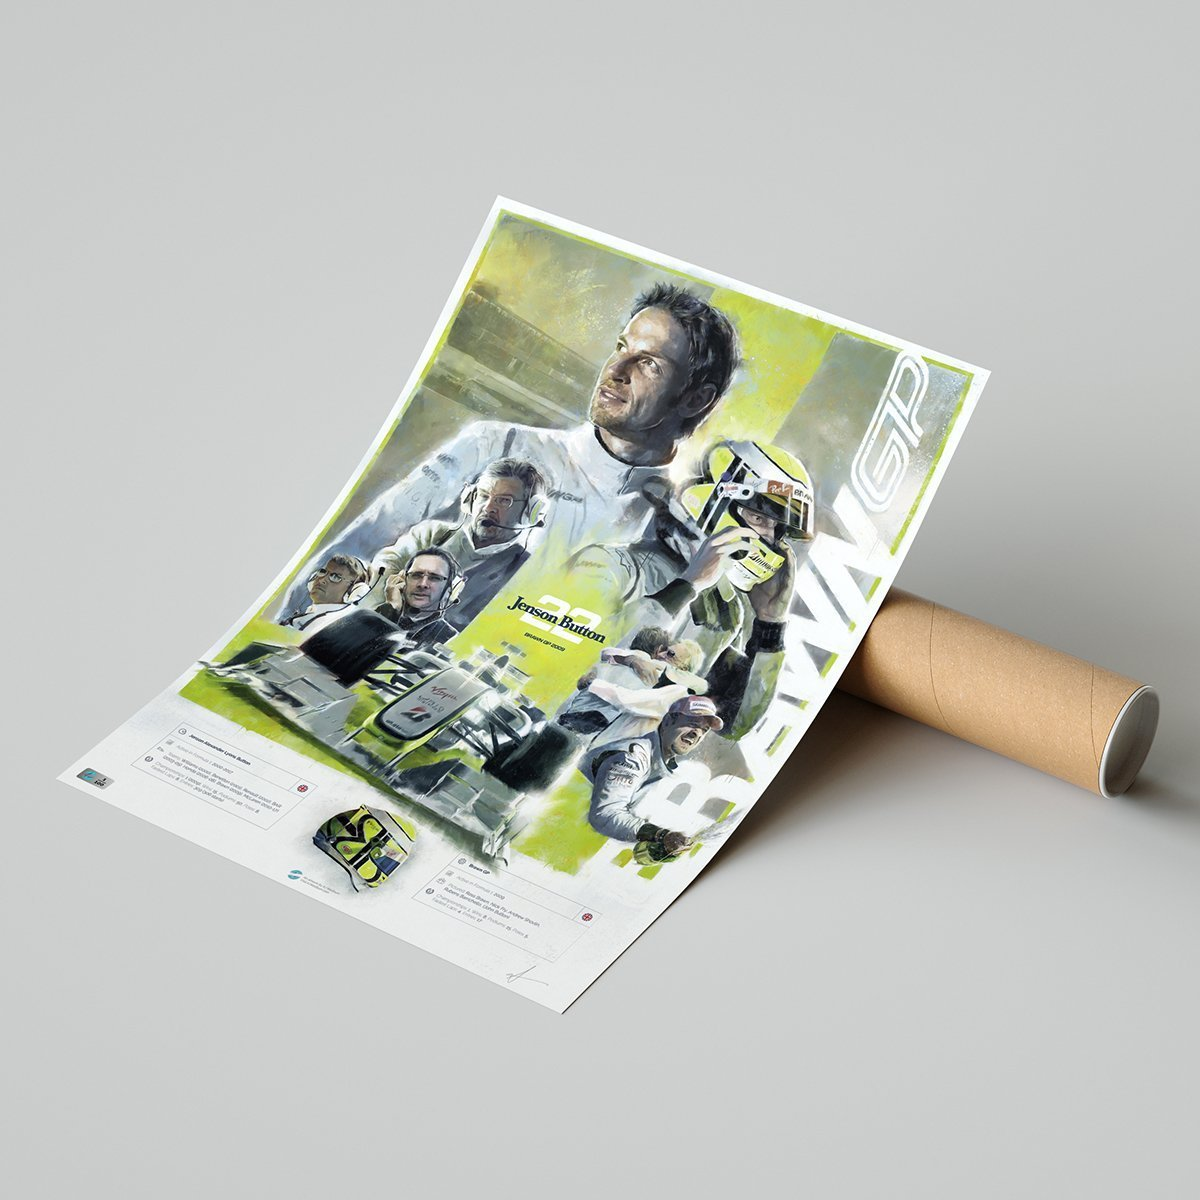 Jenson Button Poster and Tube